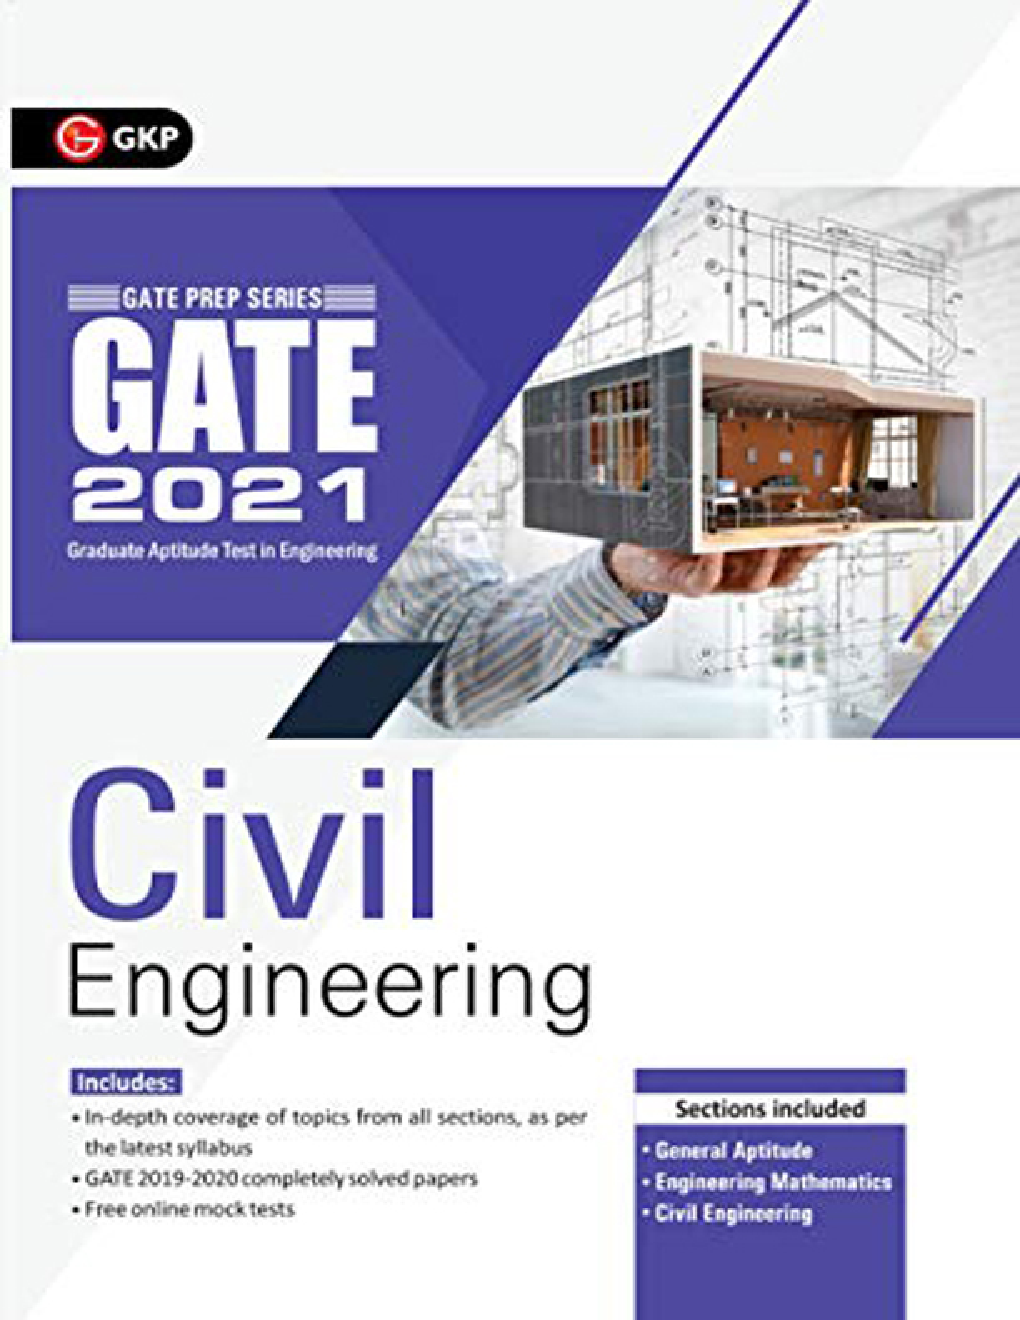 GATE 2021 Civil Engineering - Guide - Page 1